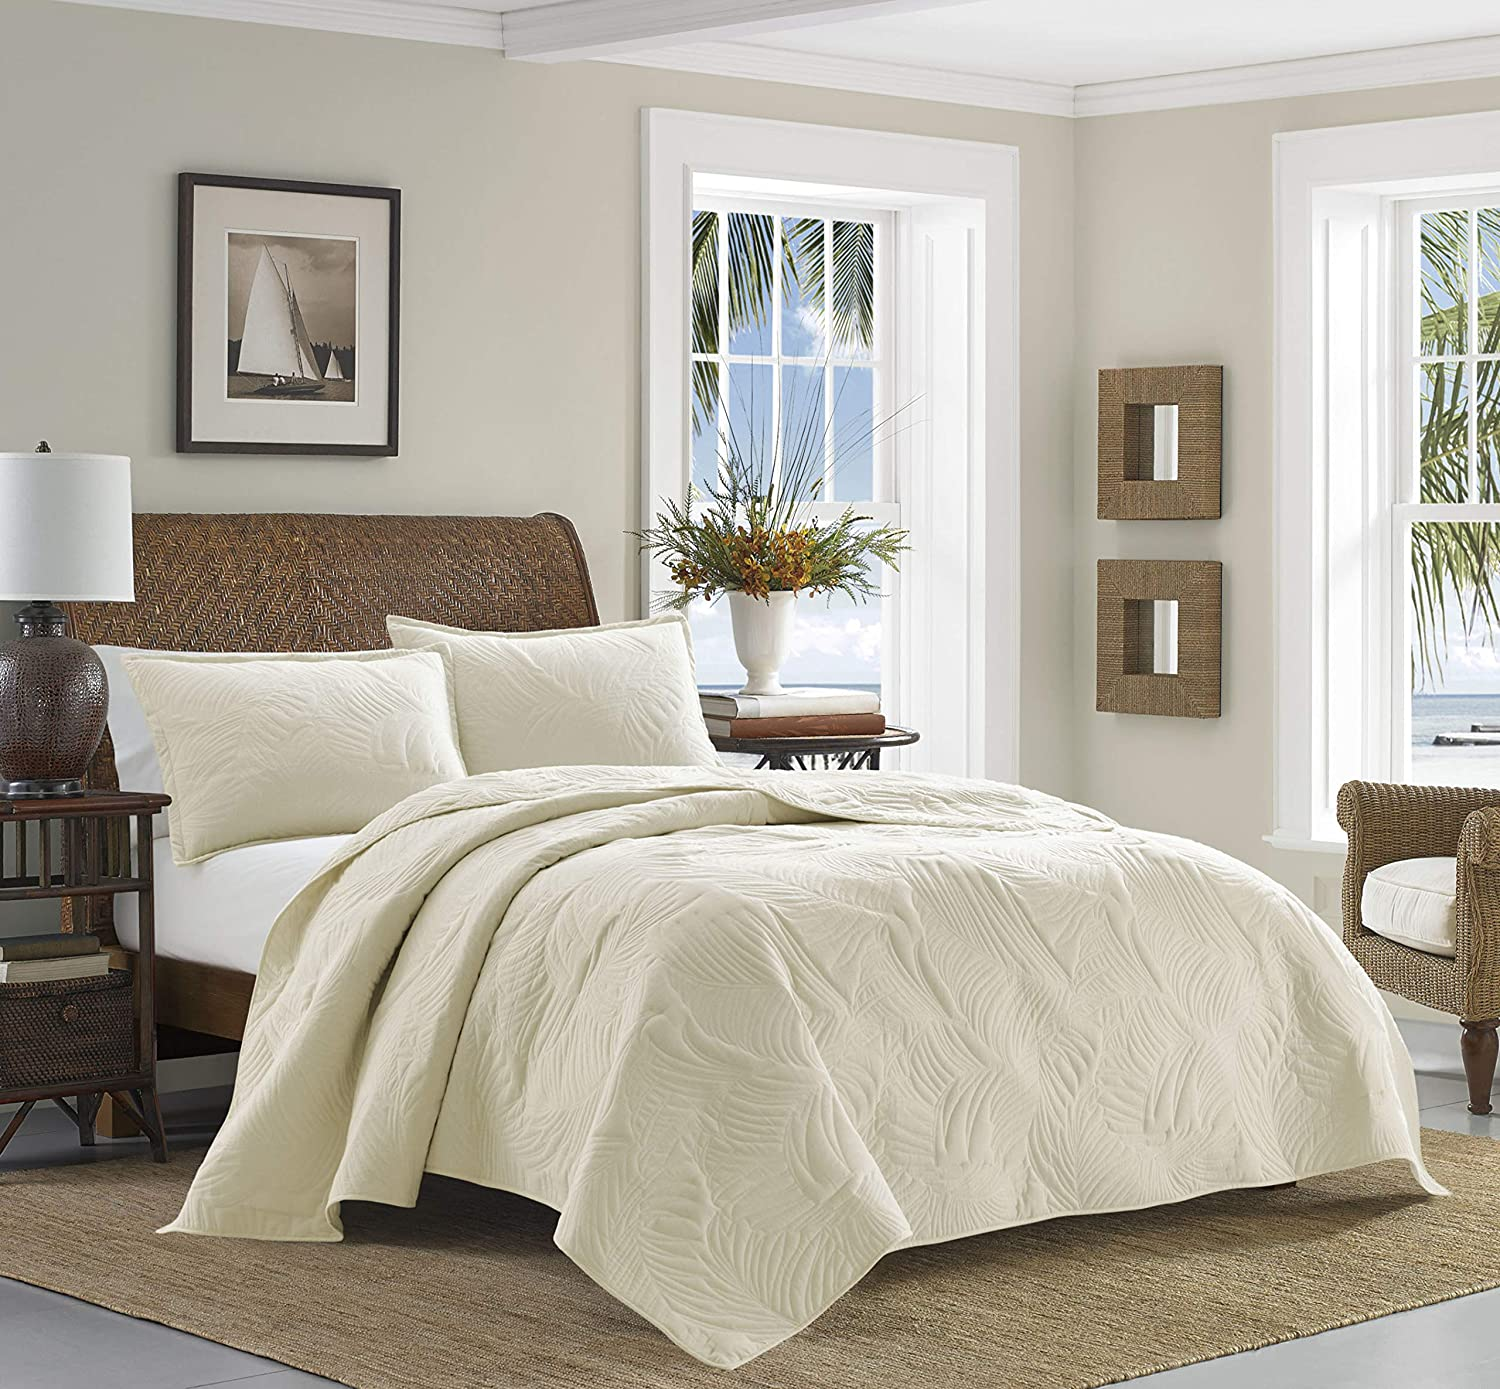 Tommy Bahama | Paradise Fronds Bedding Collection | Luxury Quality Ultra Soft Cotton Quilt Coverlet 3 Piece Set, Comfortable & Stylish Design for Home Décor, King, Ivory